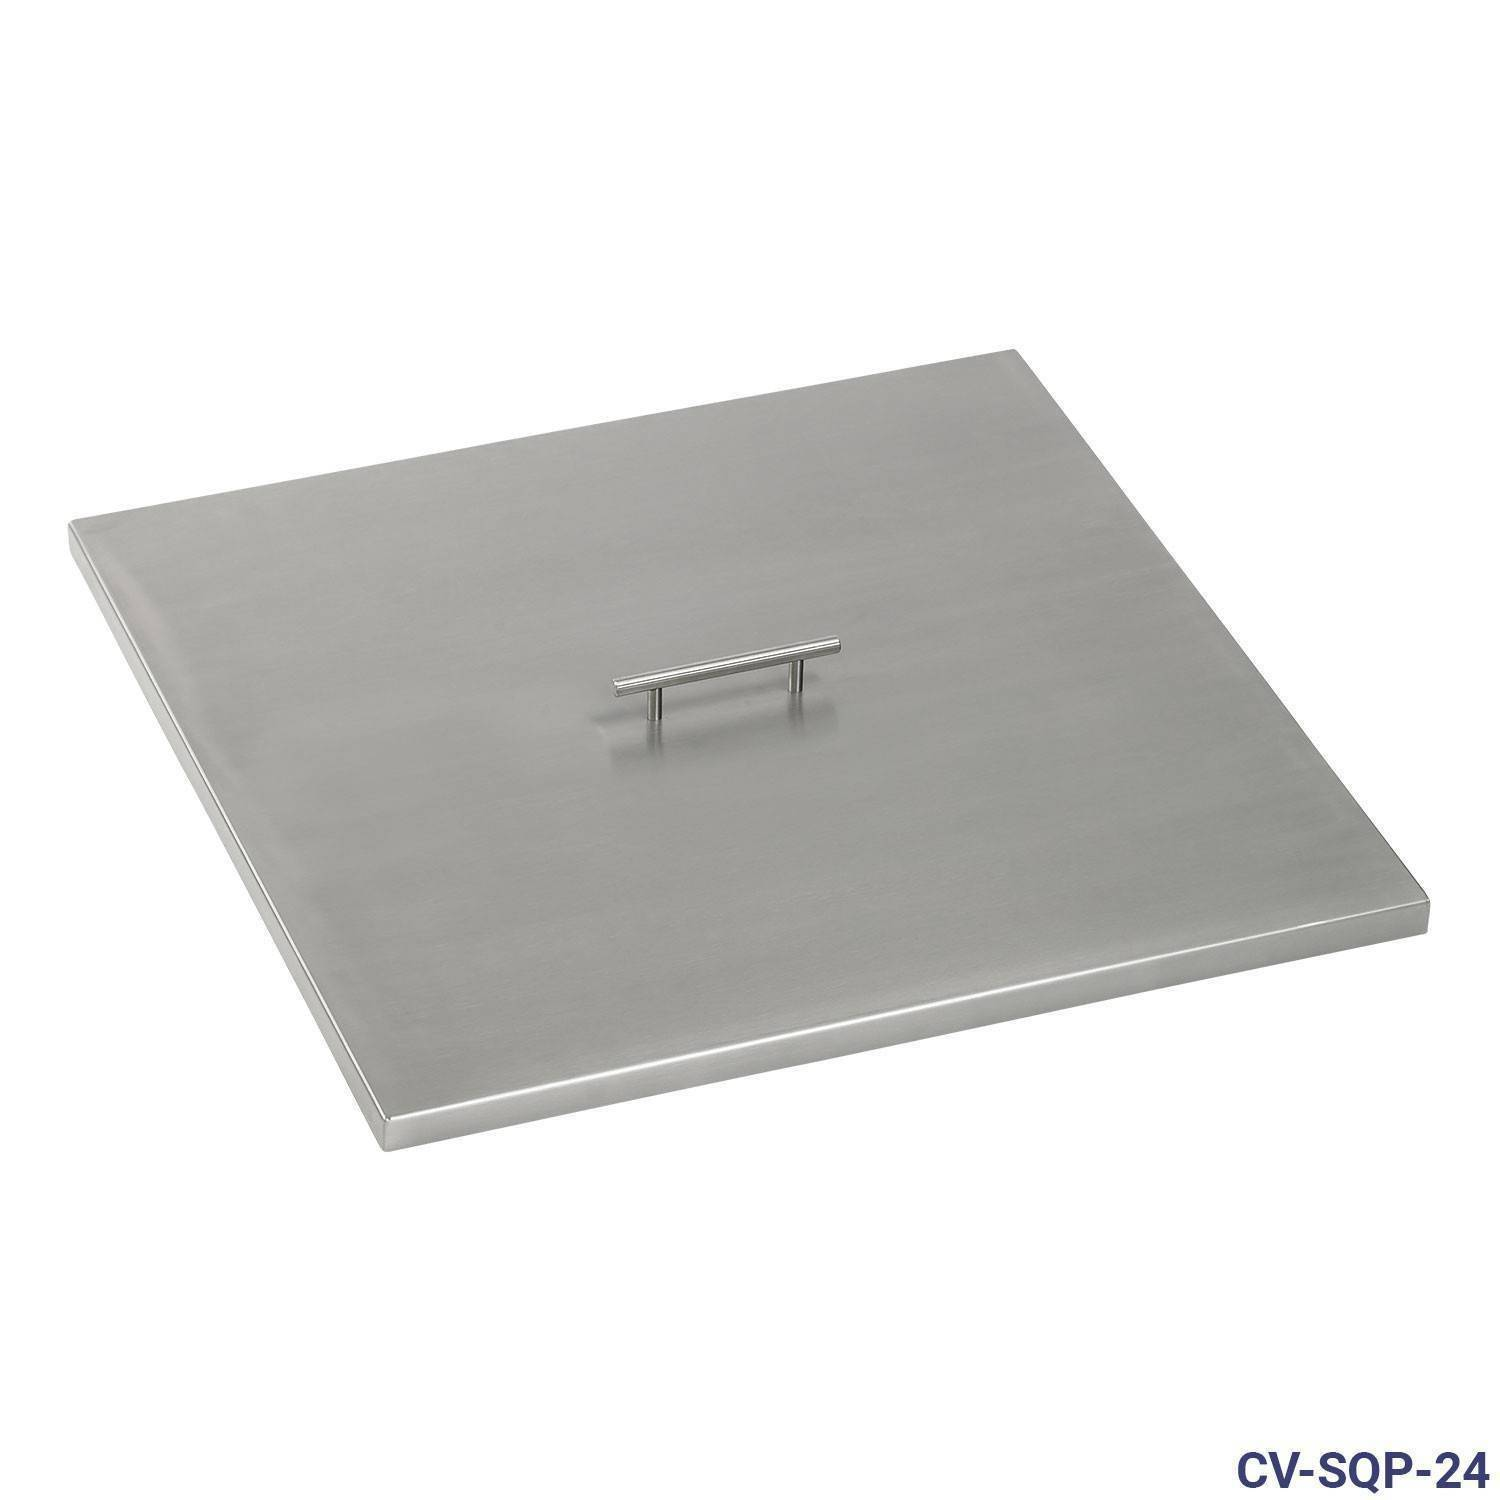 27 inch American FIreglass Stainless Steel Fire Pit Cover